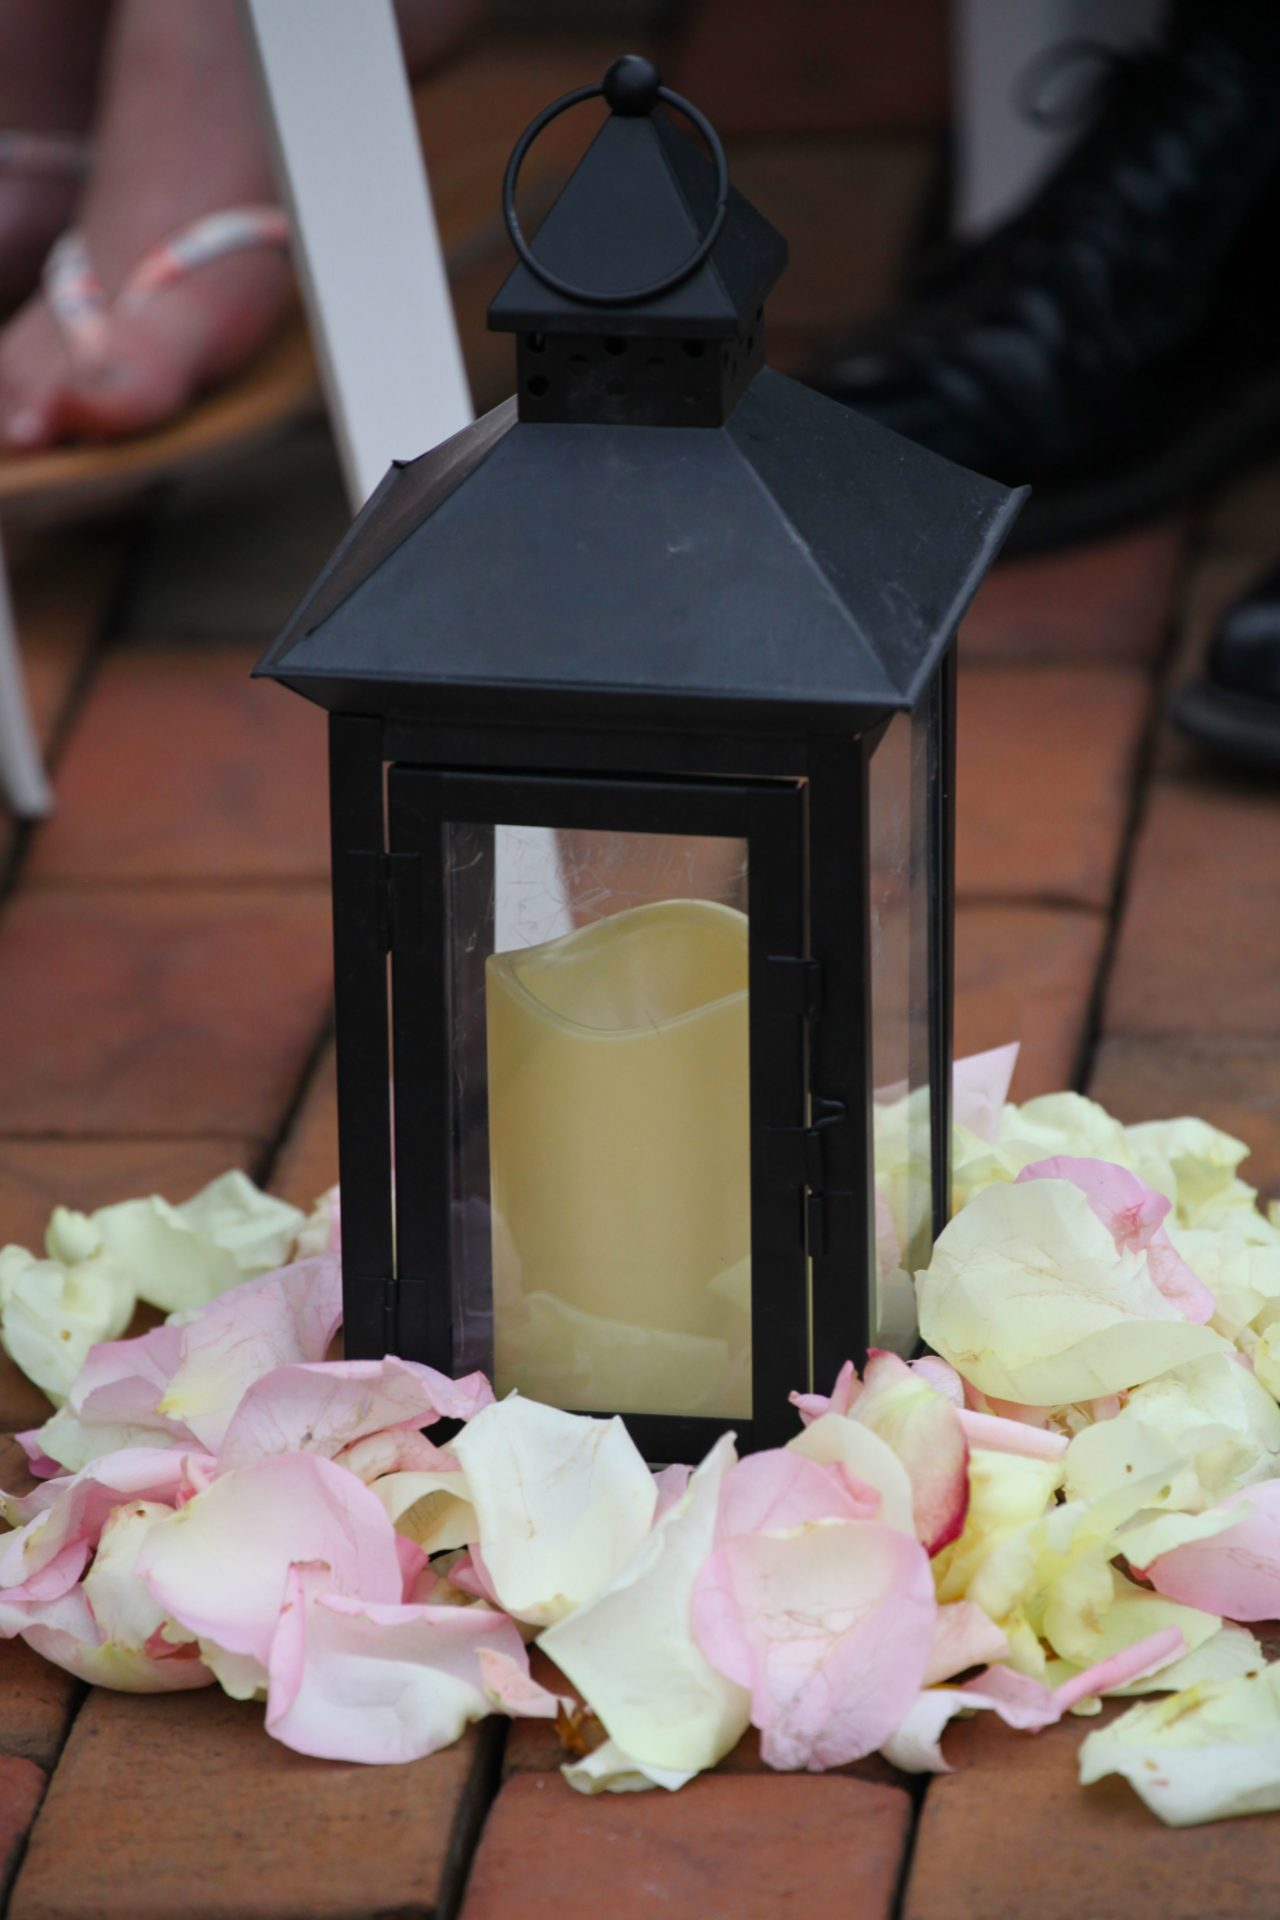 Rose petals around candle to decorate wedding ceremony aisle